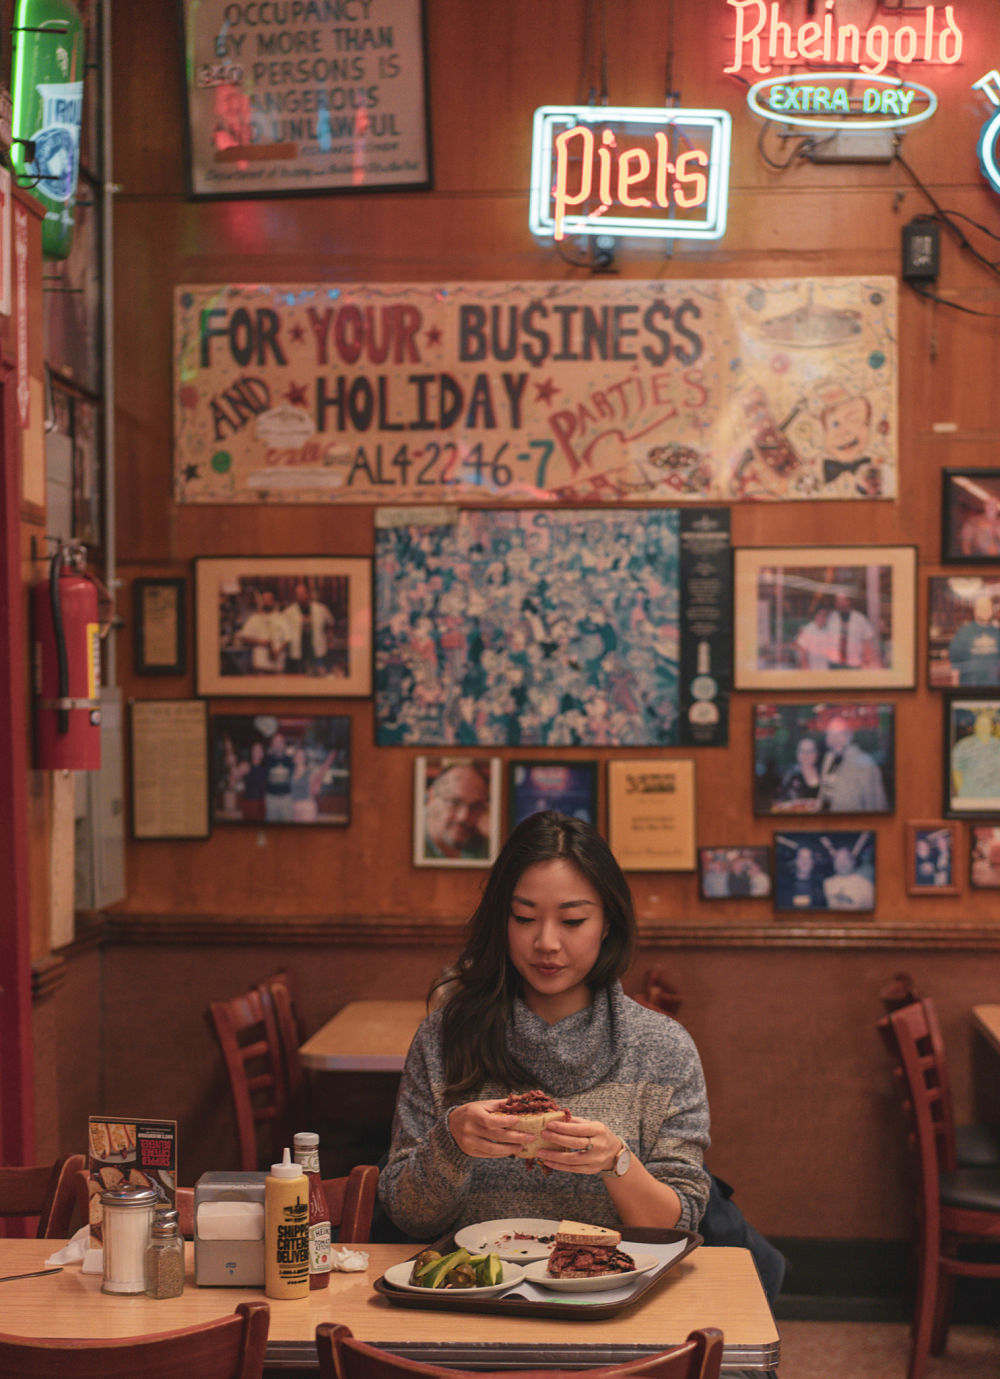 A girl eating a pastrami sandwich in Katzs deli in new york city